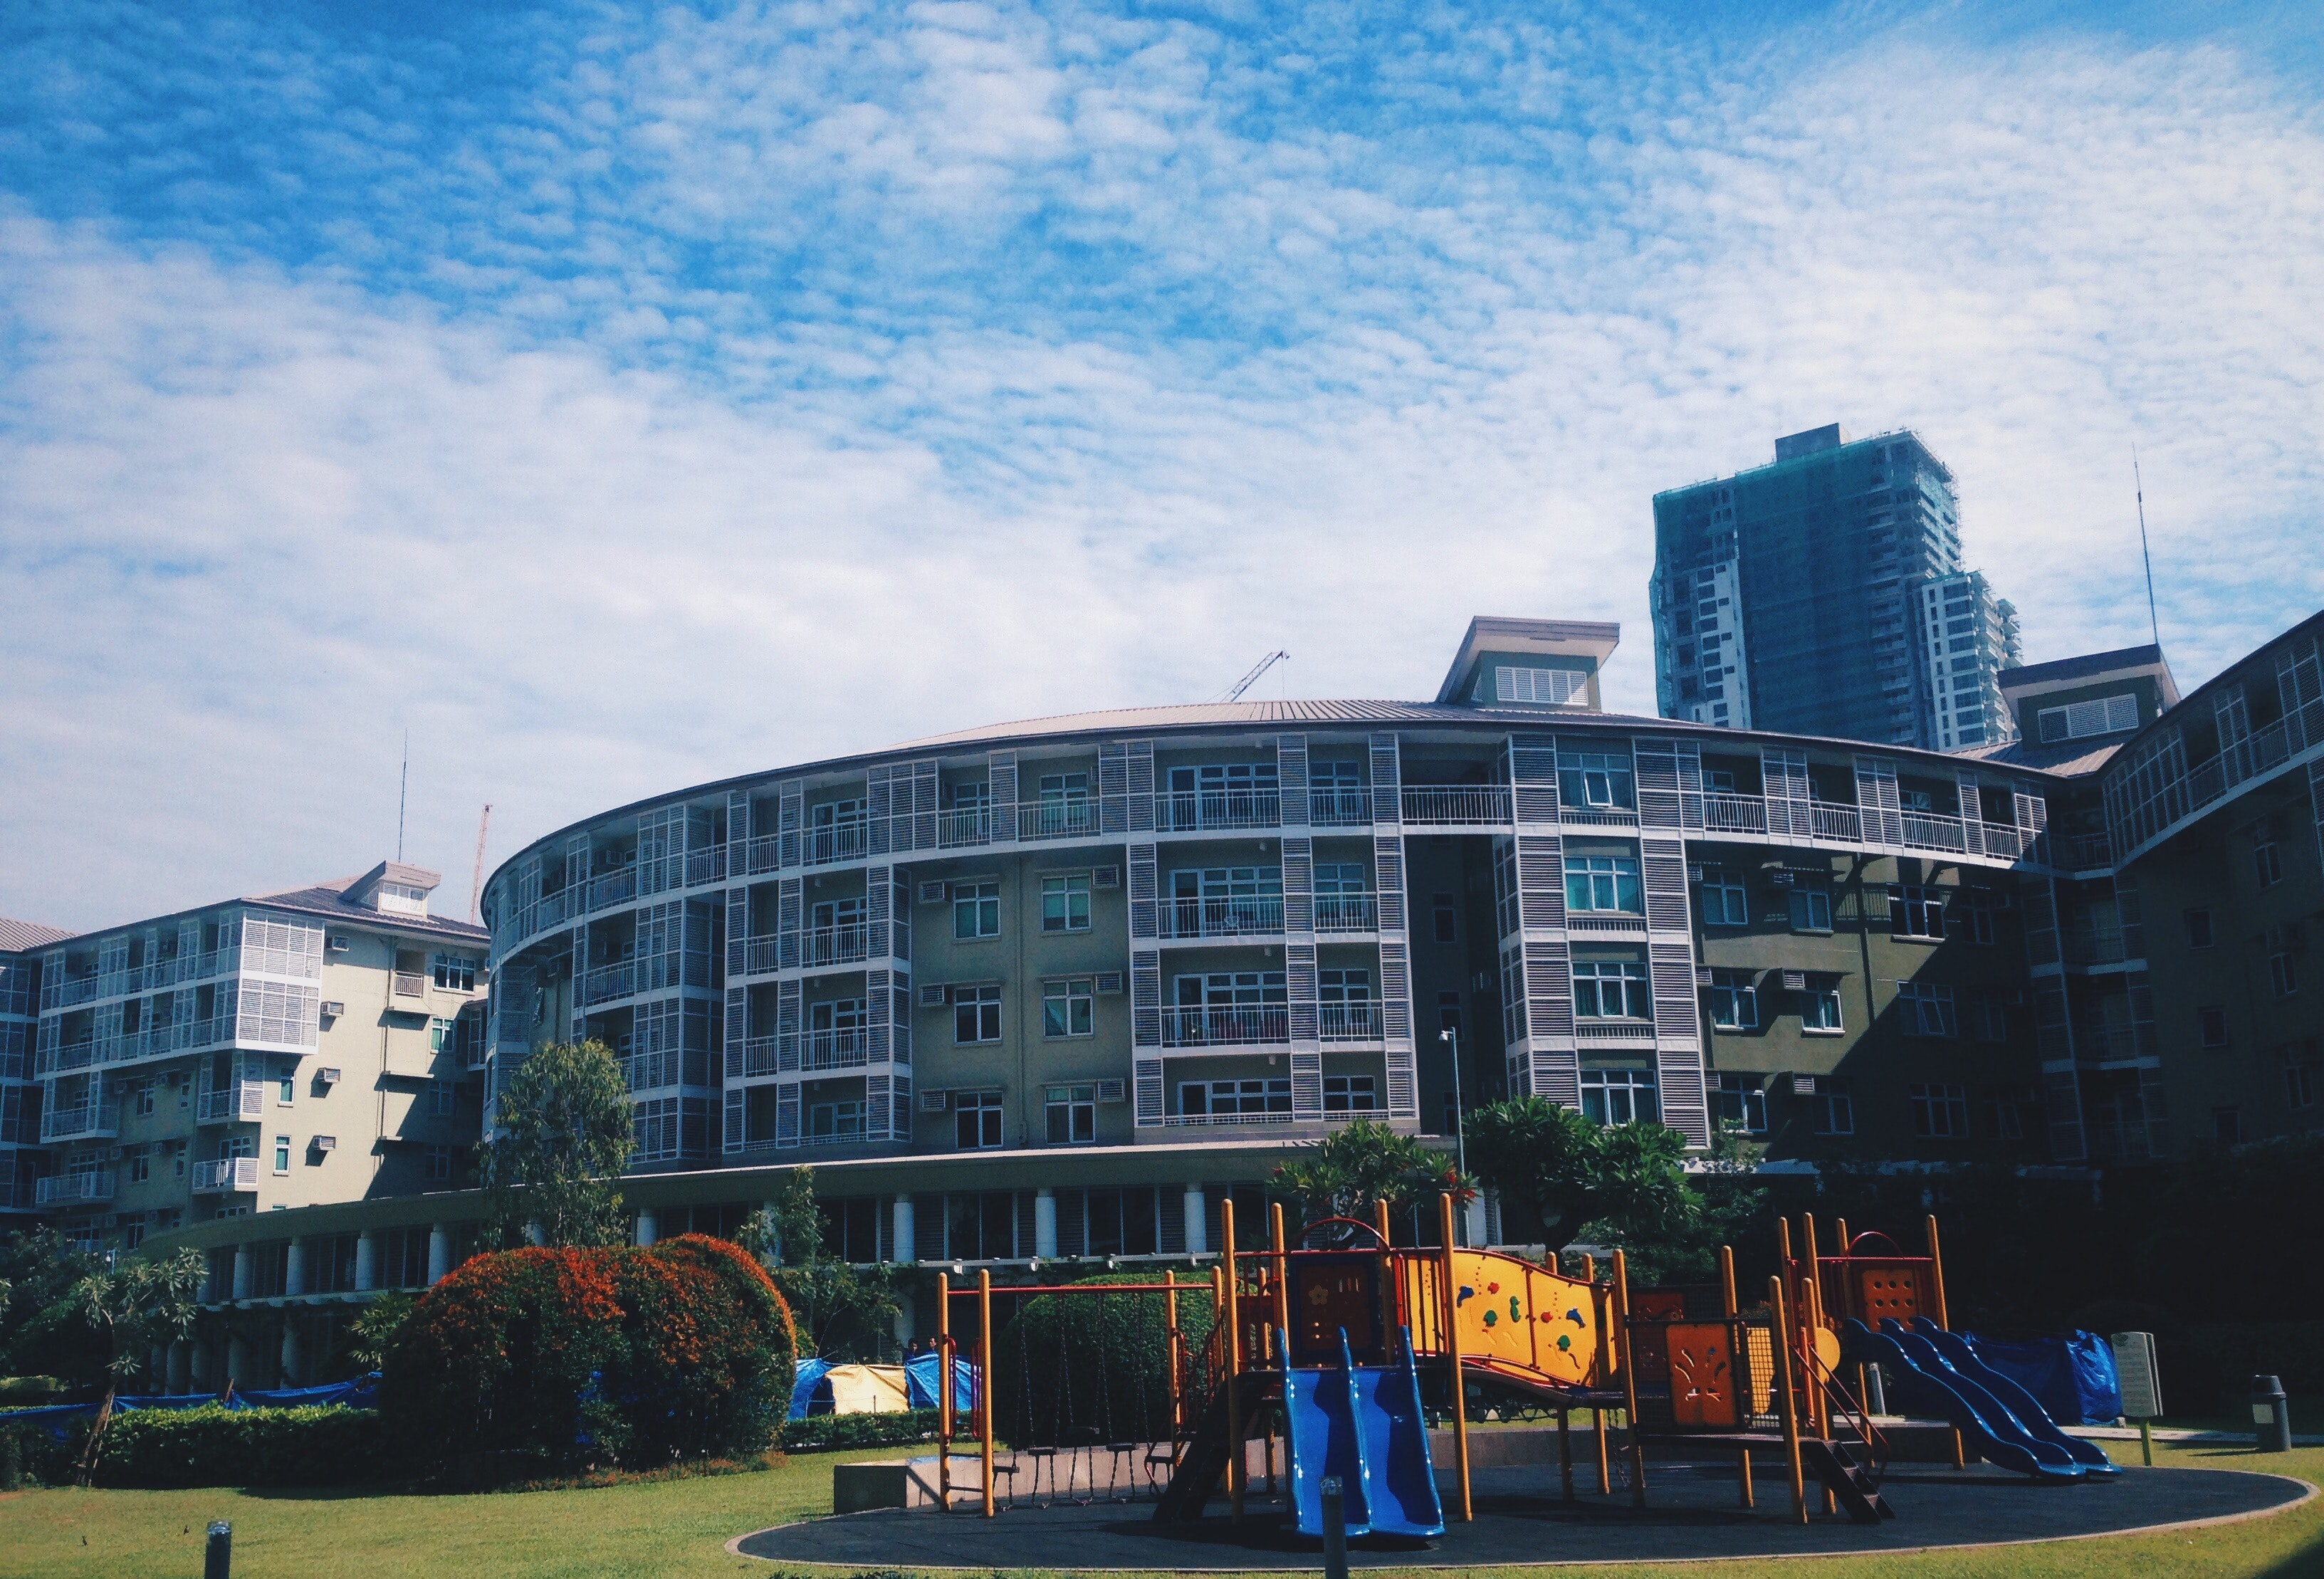 View of Buildings in City, Apartment, Trees, Tower, Slide, HQ Photo